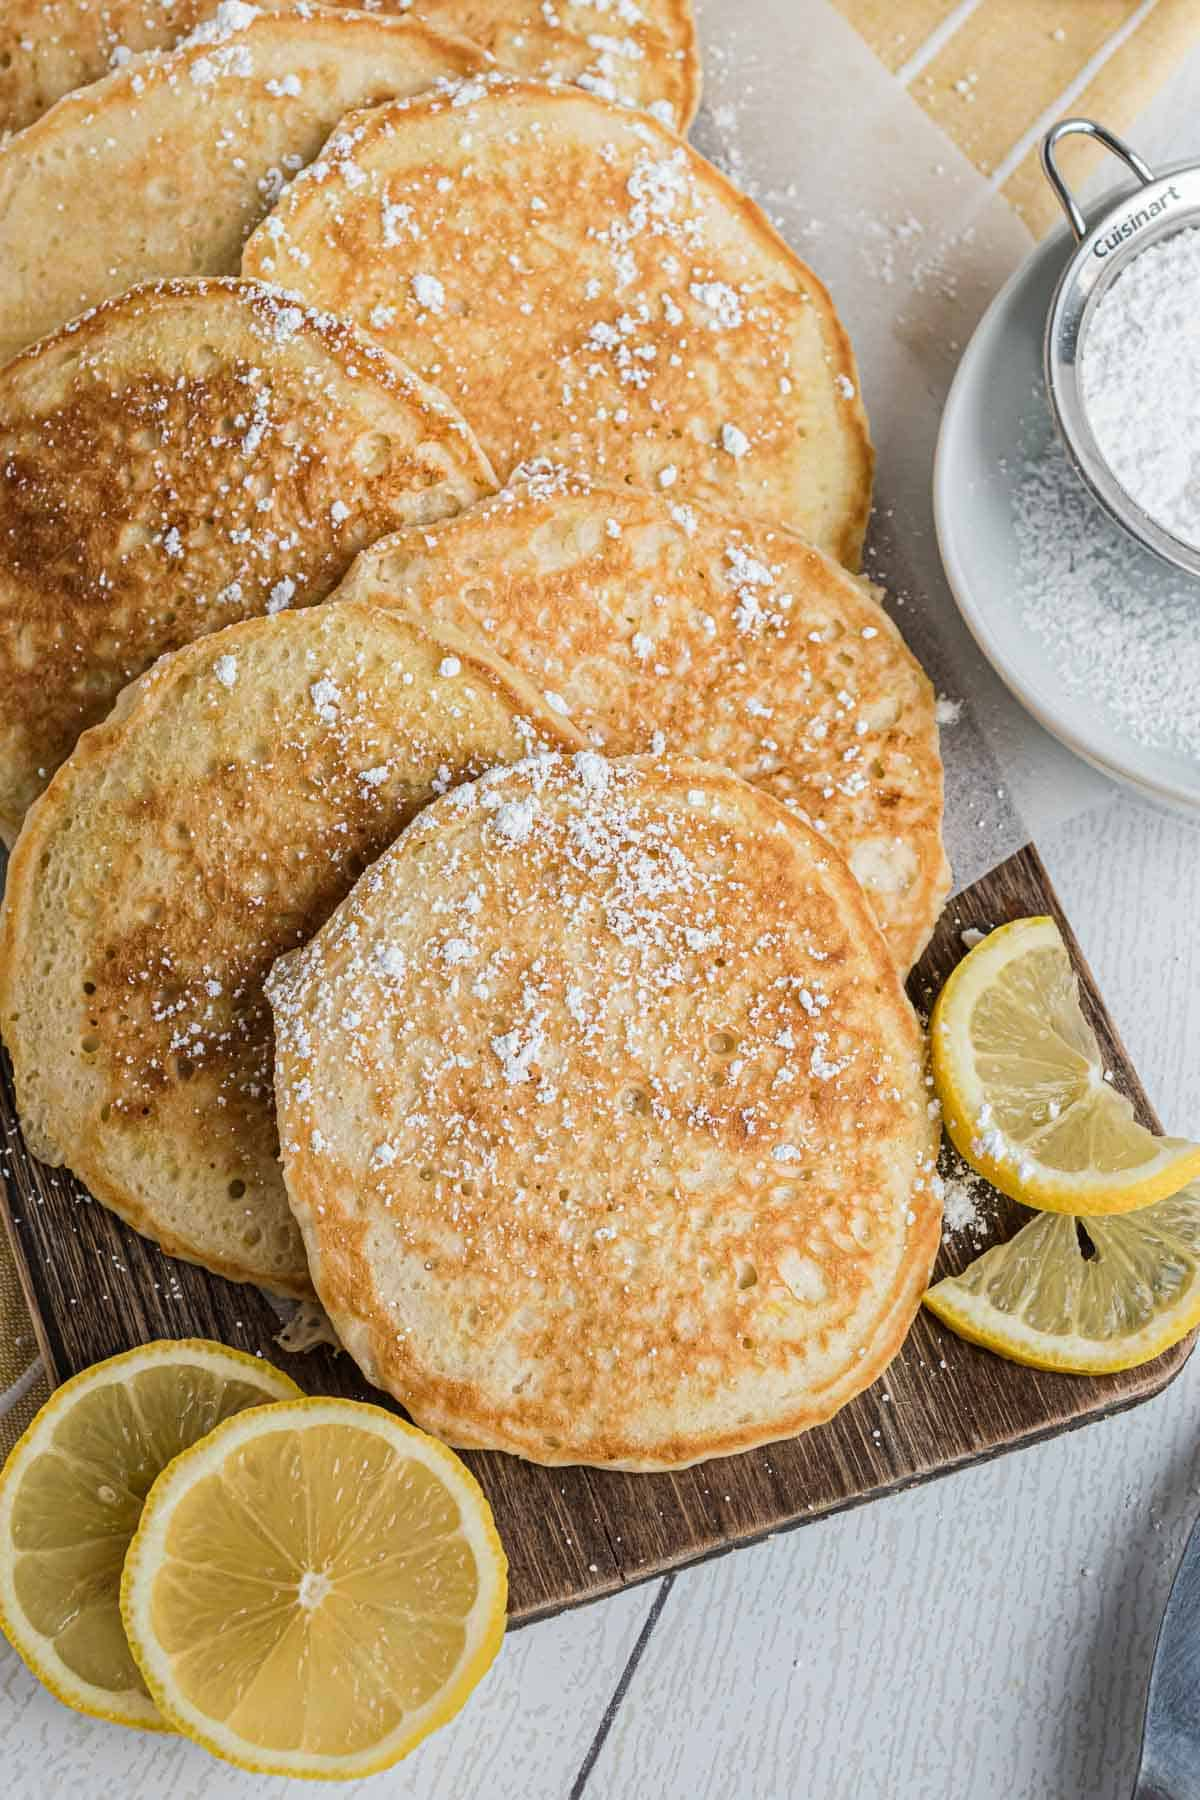 Pancakes on a platter with lemon slices.